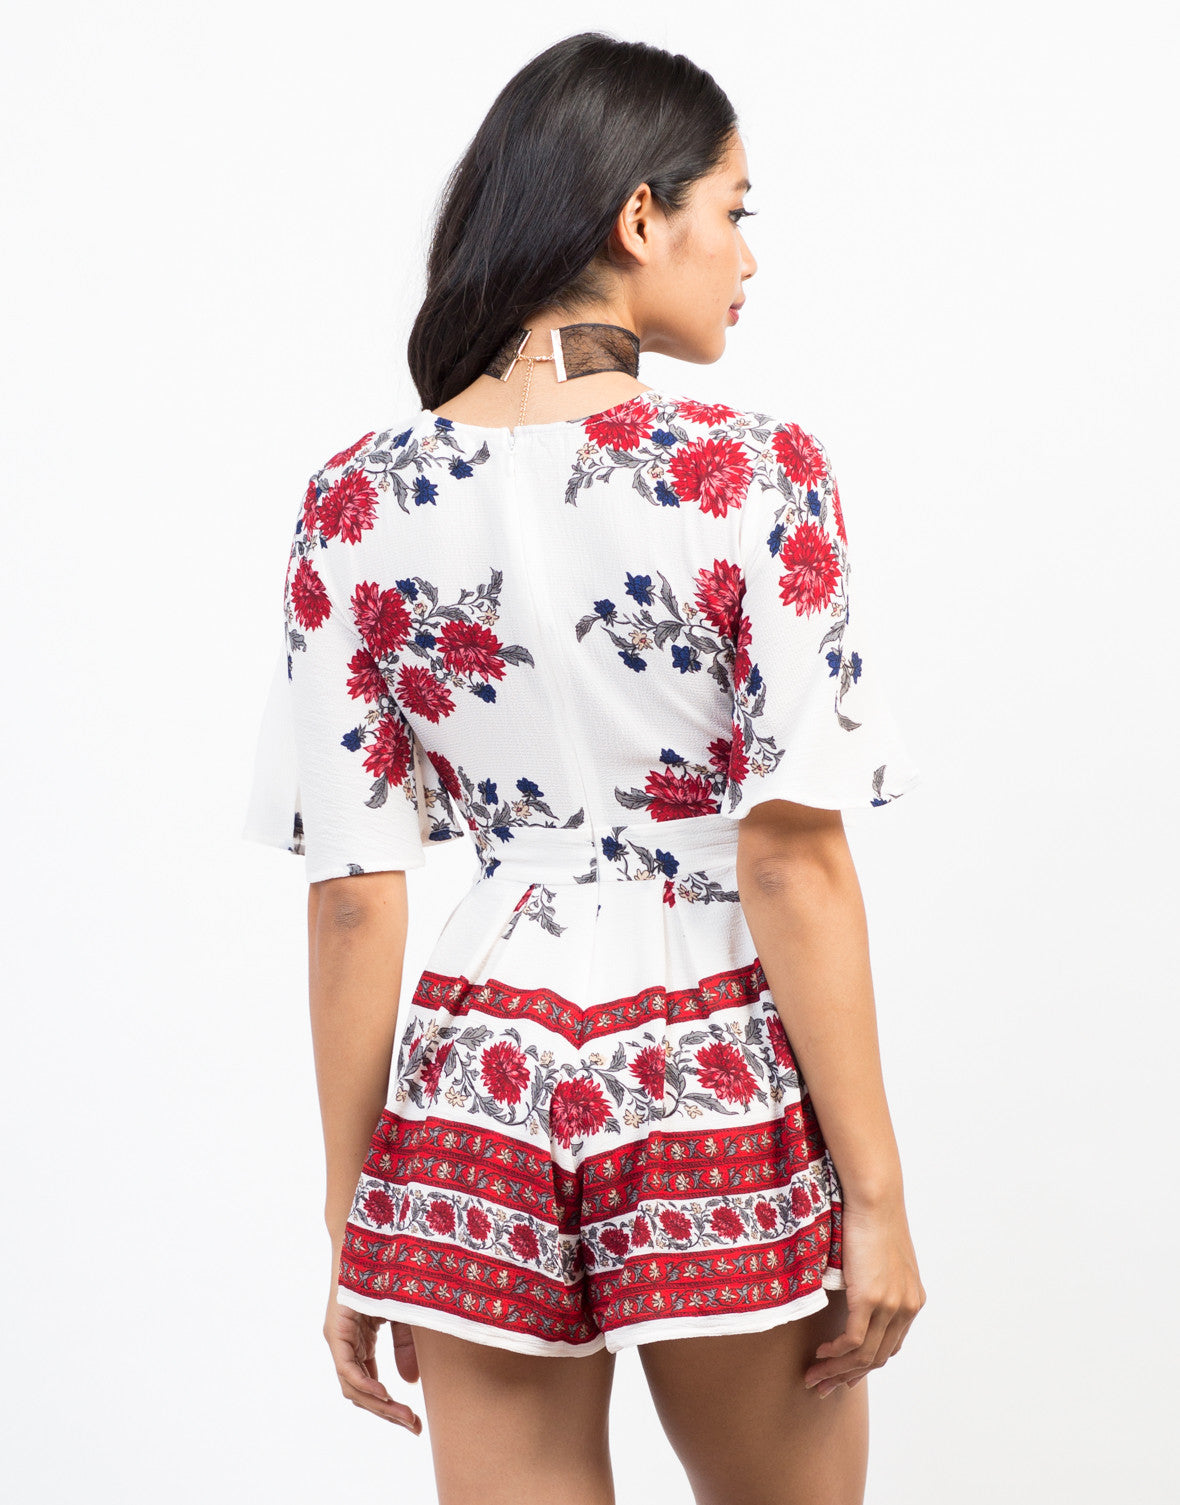 Back View of Red Floral Romper